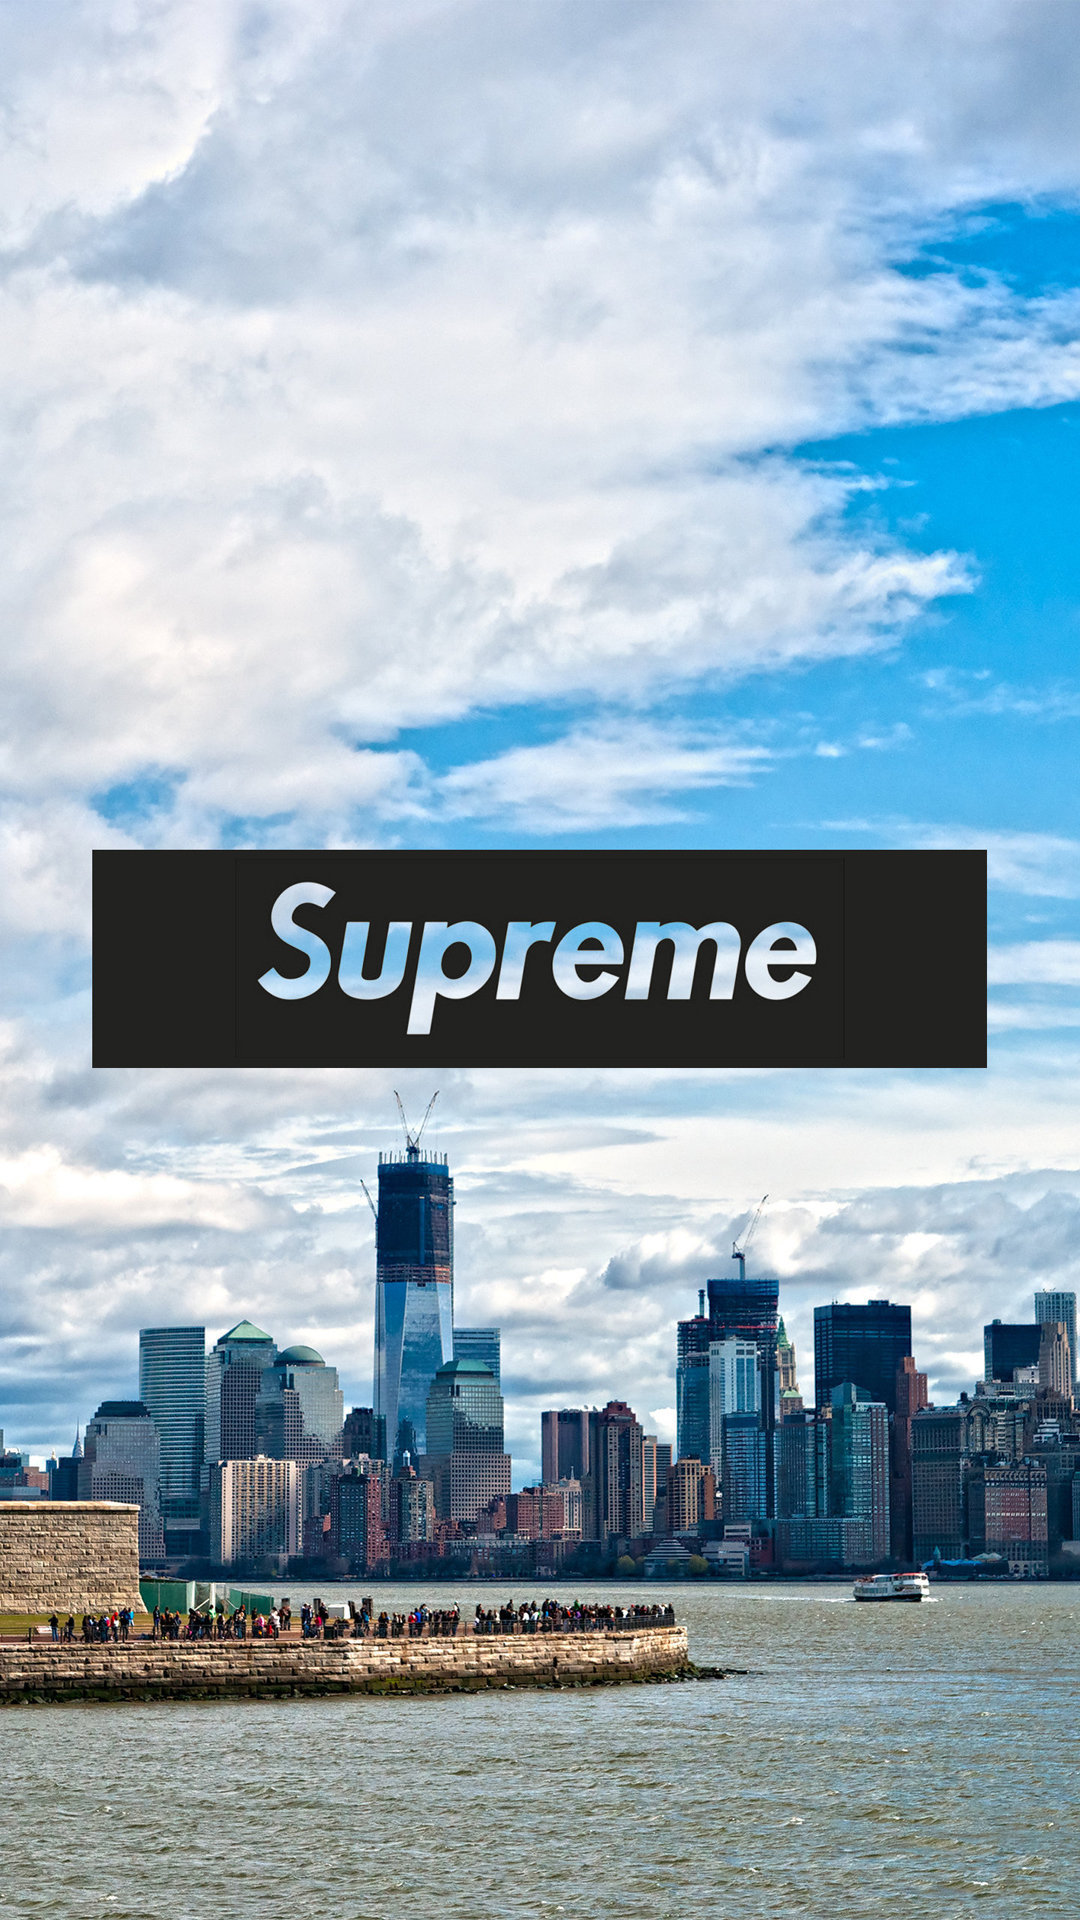 Supreme Wallpapers   Download Supreme HD Wallpapers 1080x1920